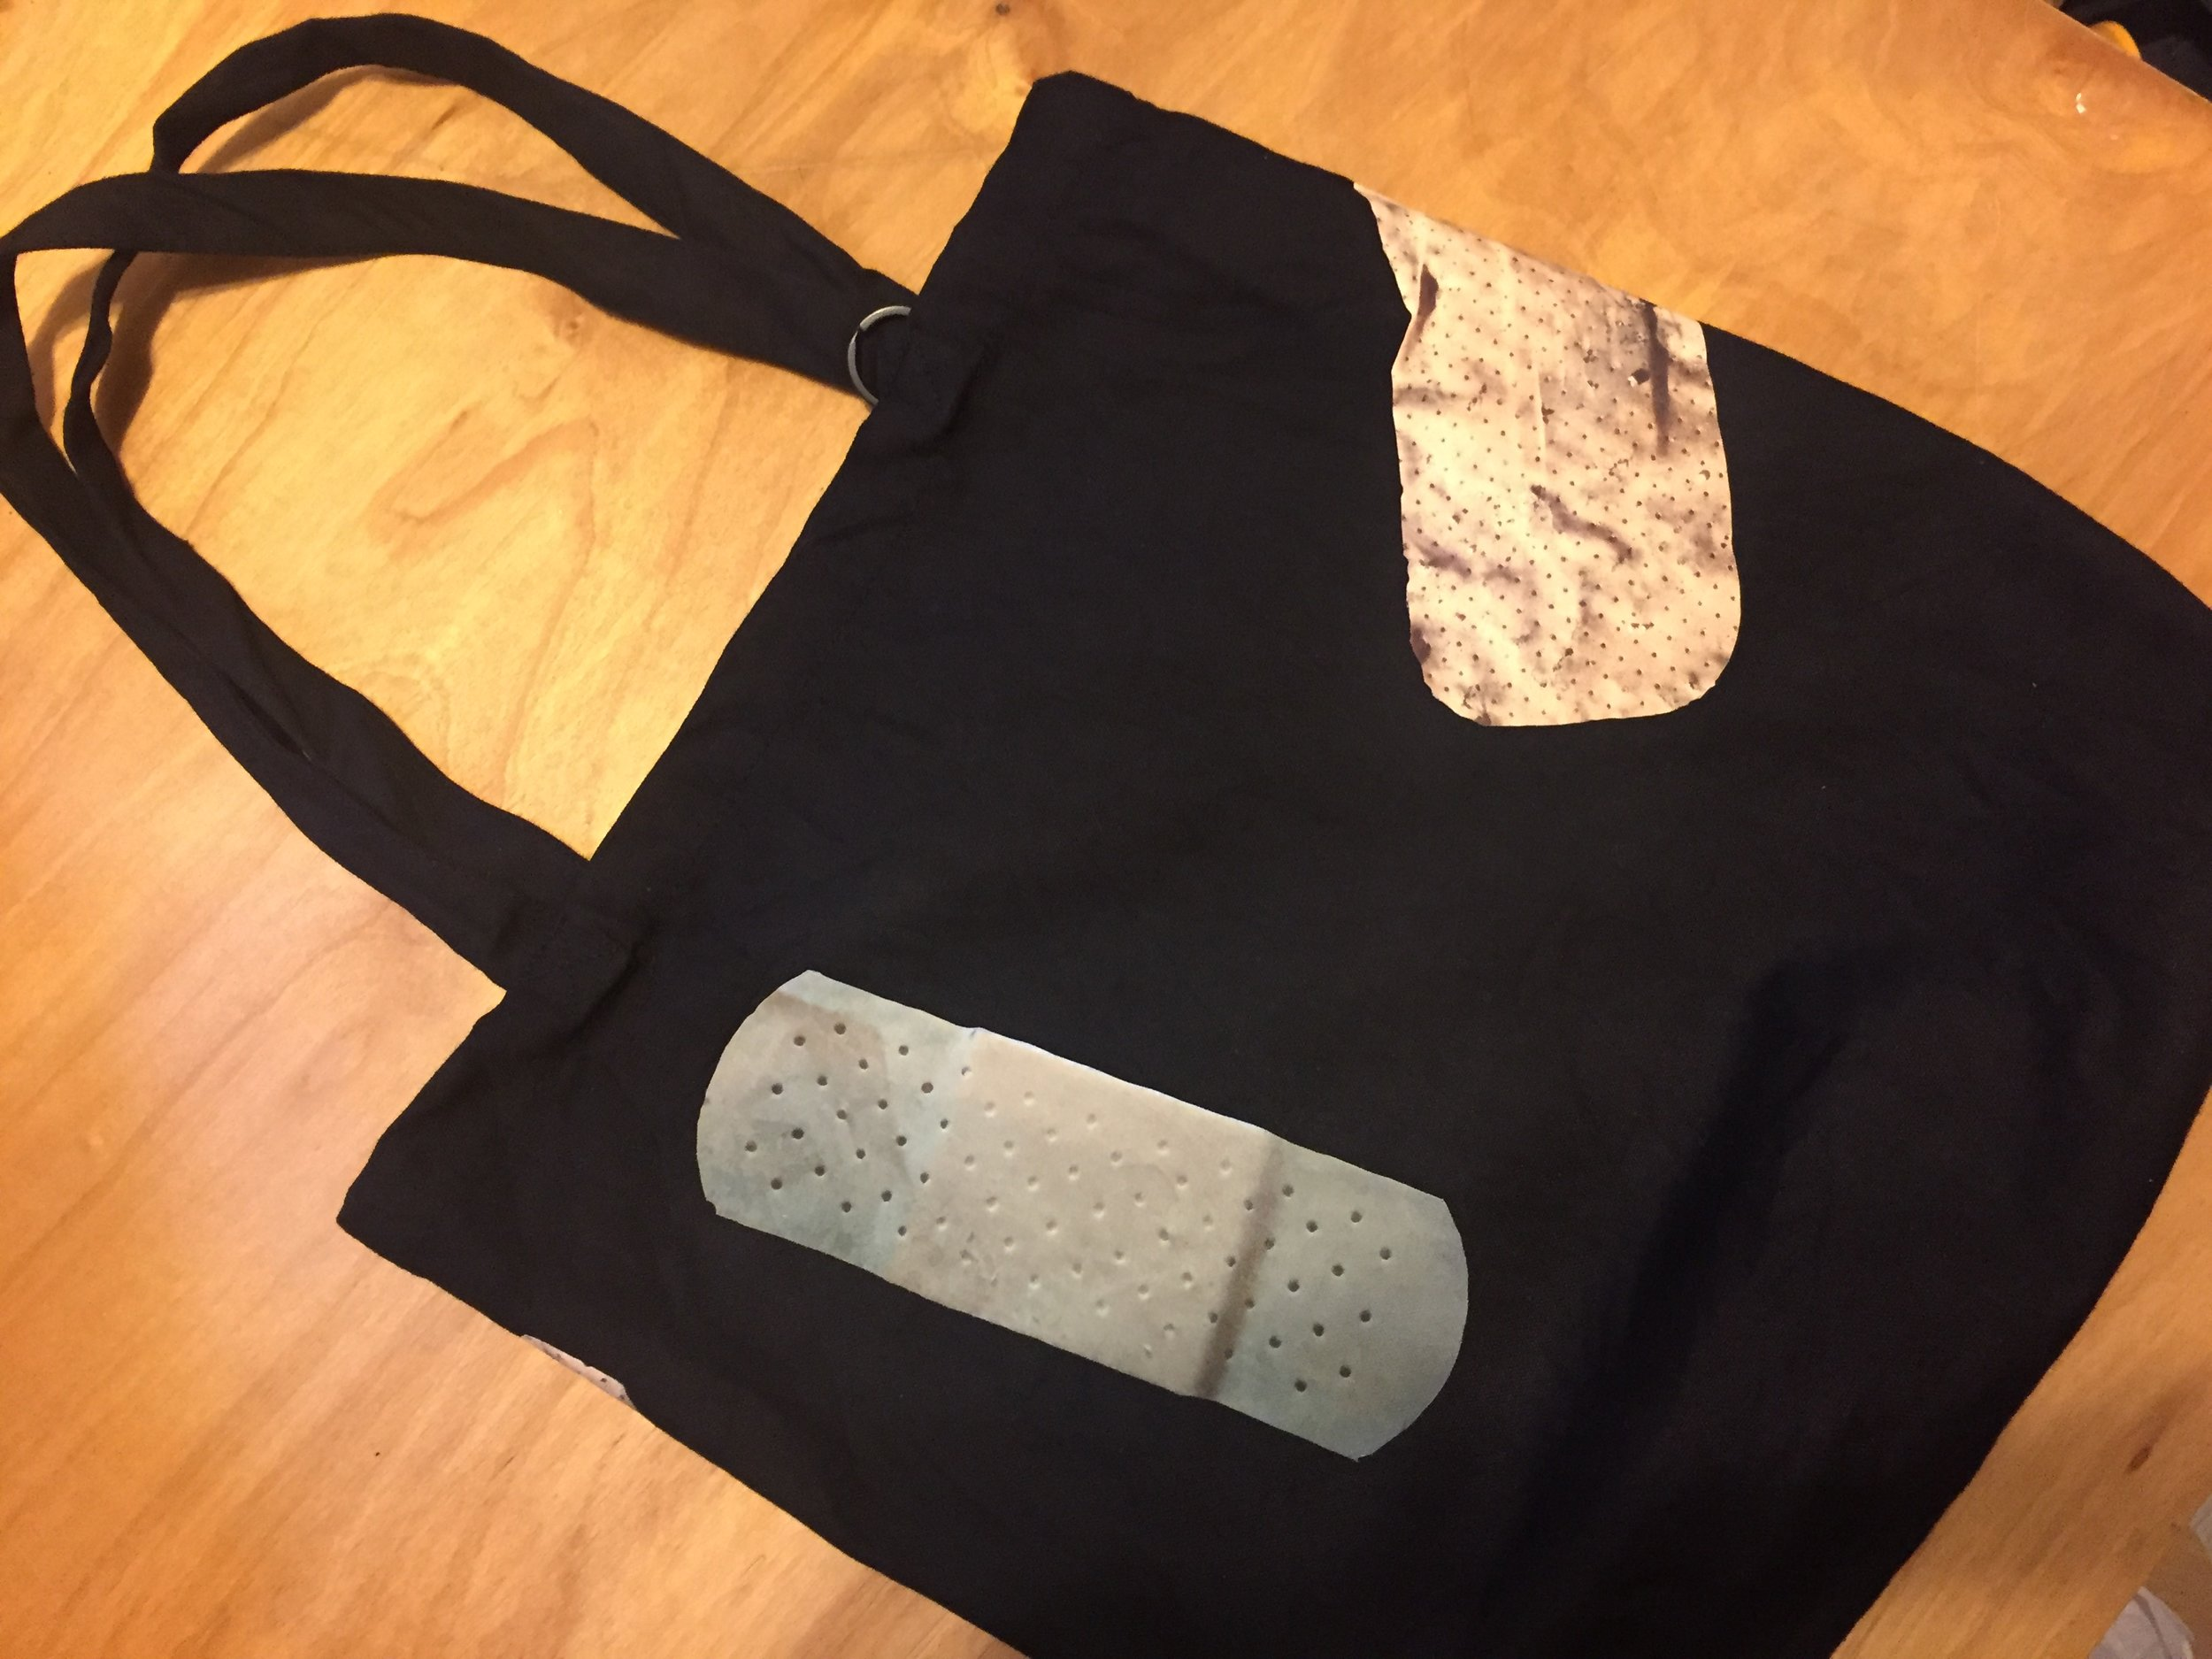 "Bandage Tote Bag. Iron-oned, Pre-washed, Preshrunk. 10oz 100% Cotton canvas. 15"" x 15"" x 4"". Each Bandage was documented on the street using cellphone camera by Niizeki Hiromi."